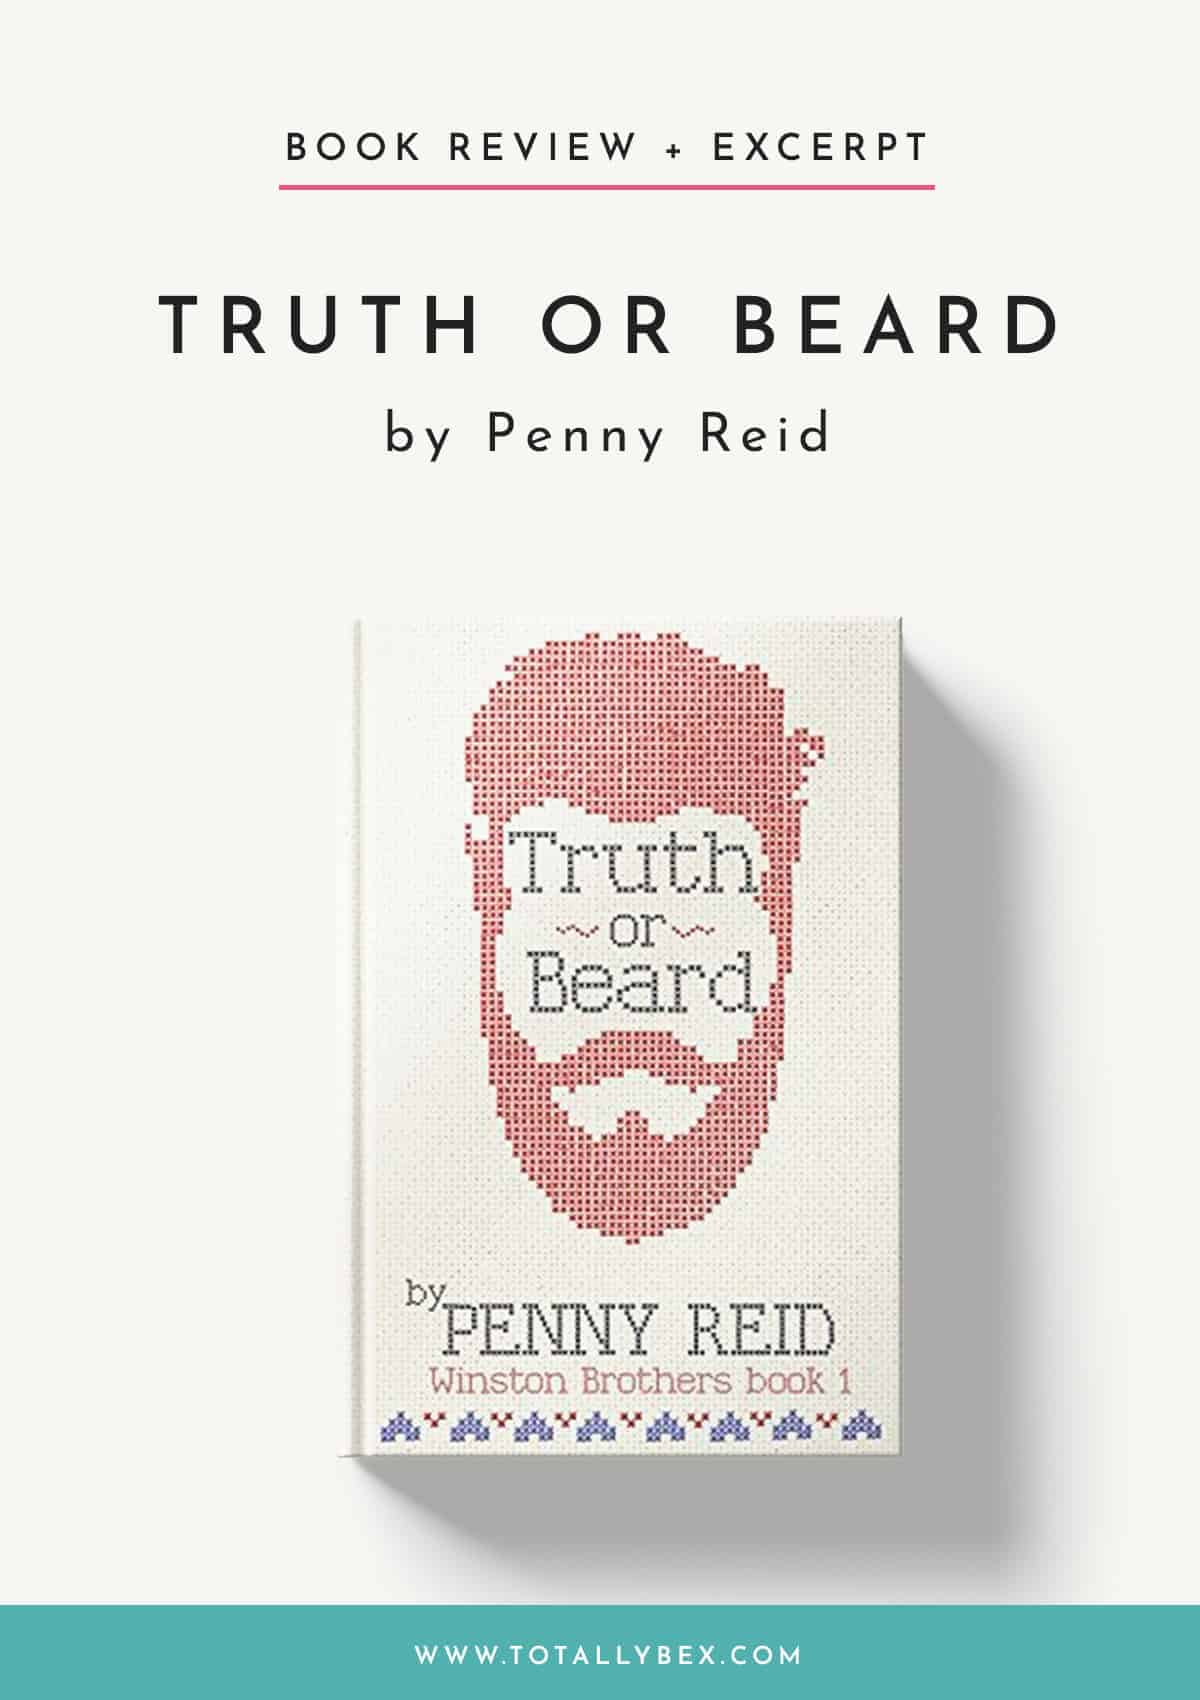 Truth or Beard by Penny Reid-Book Review